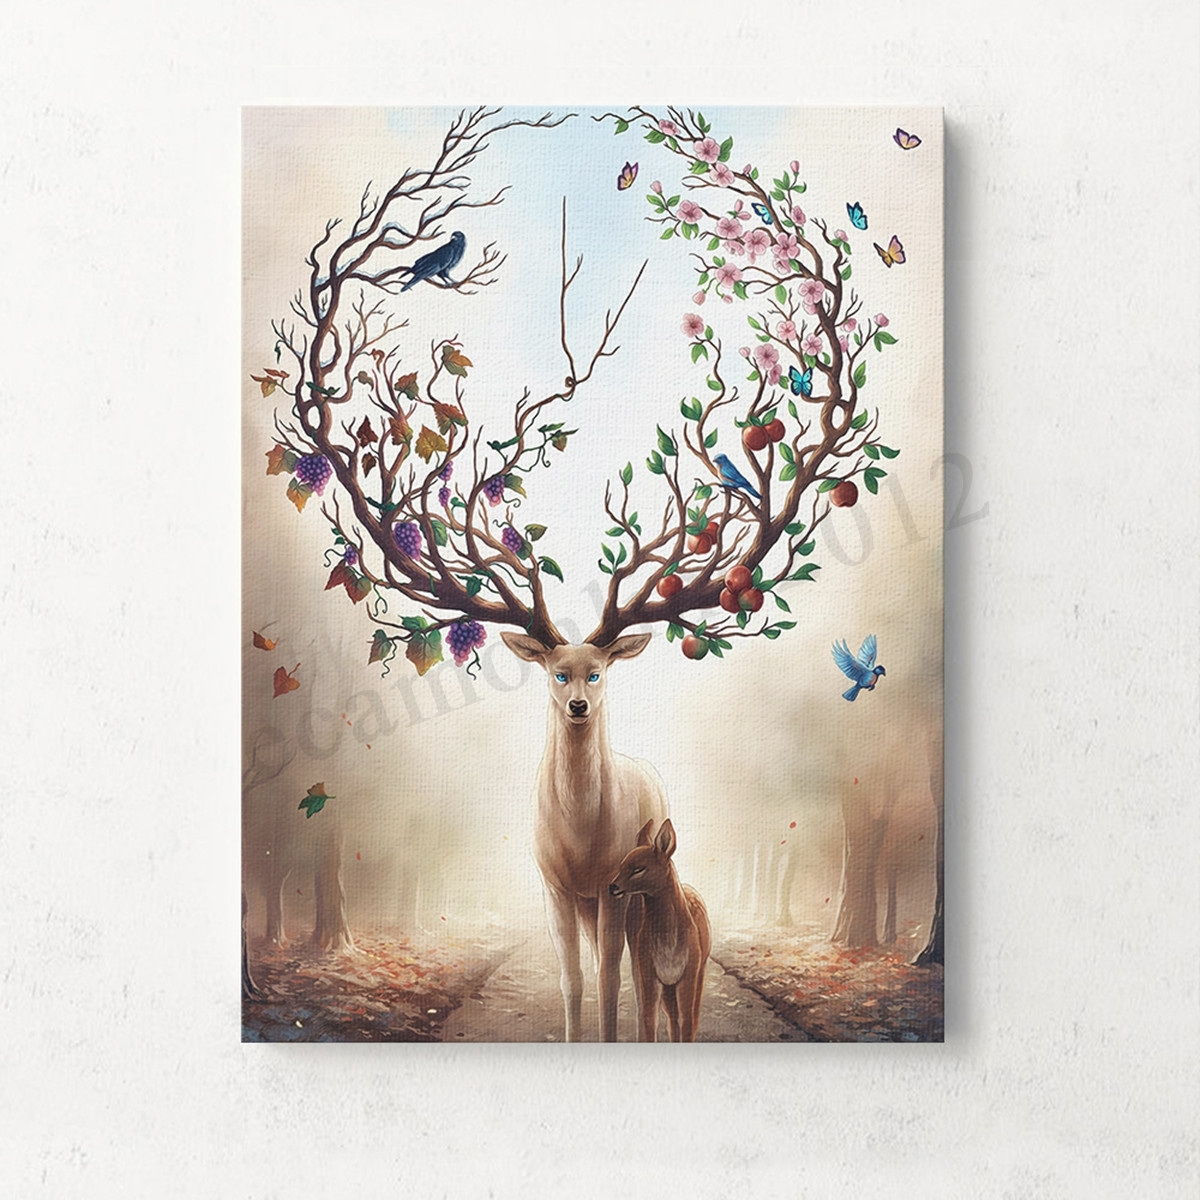 Unframed Canvas Print Deer Design Modern Home Decor Wall Art Intended For Recent Home Decor Wall Art (Gallery 9 of 20)